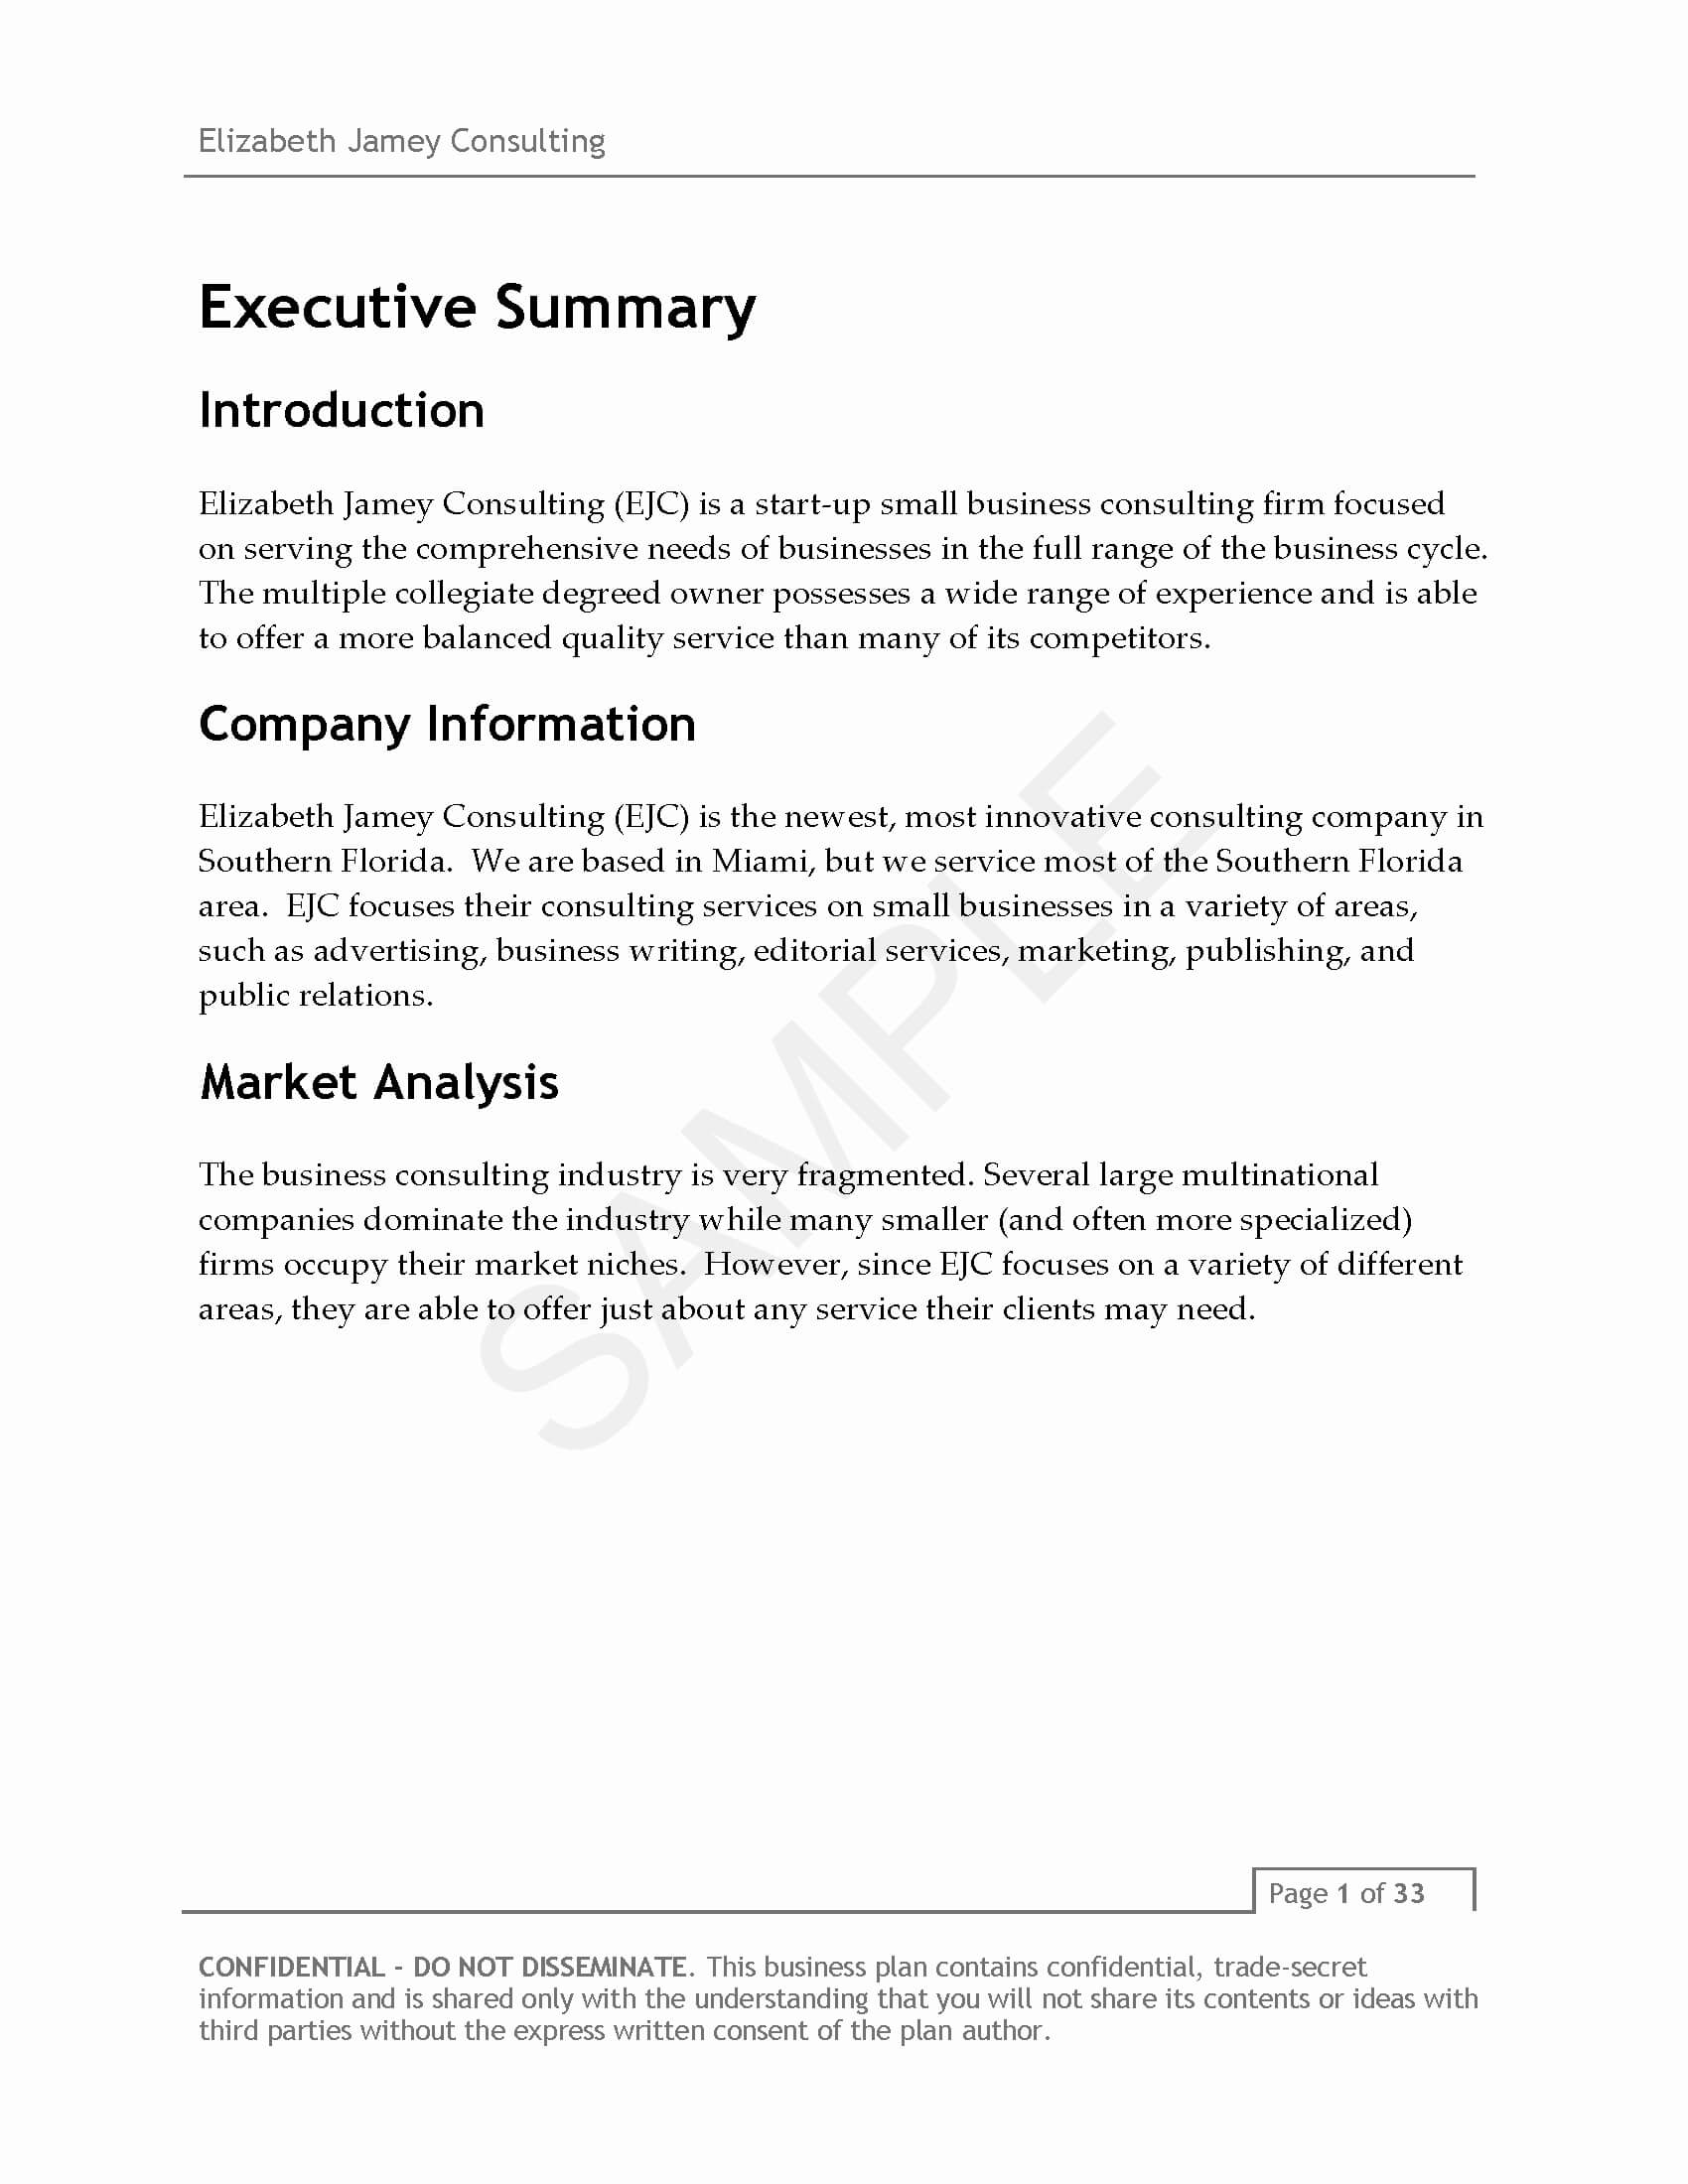 Consulting Company Business Plan Plans Security Sample For With Business Plan Template For Consulting Firm